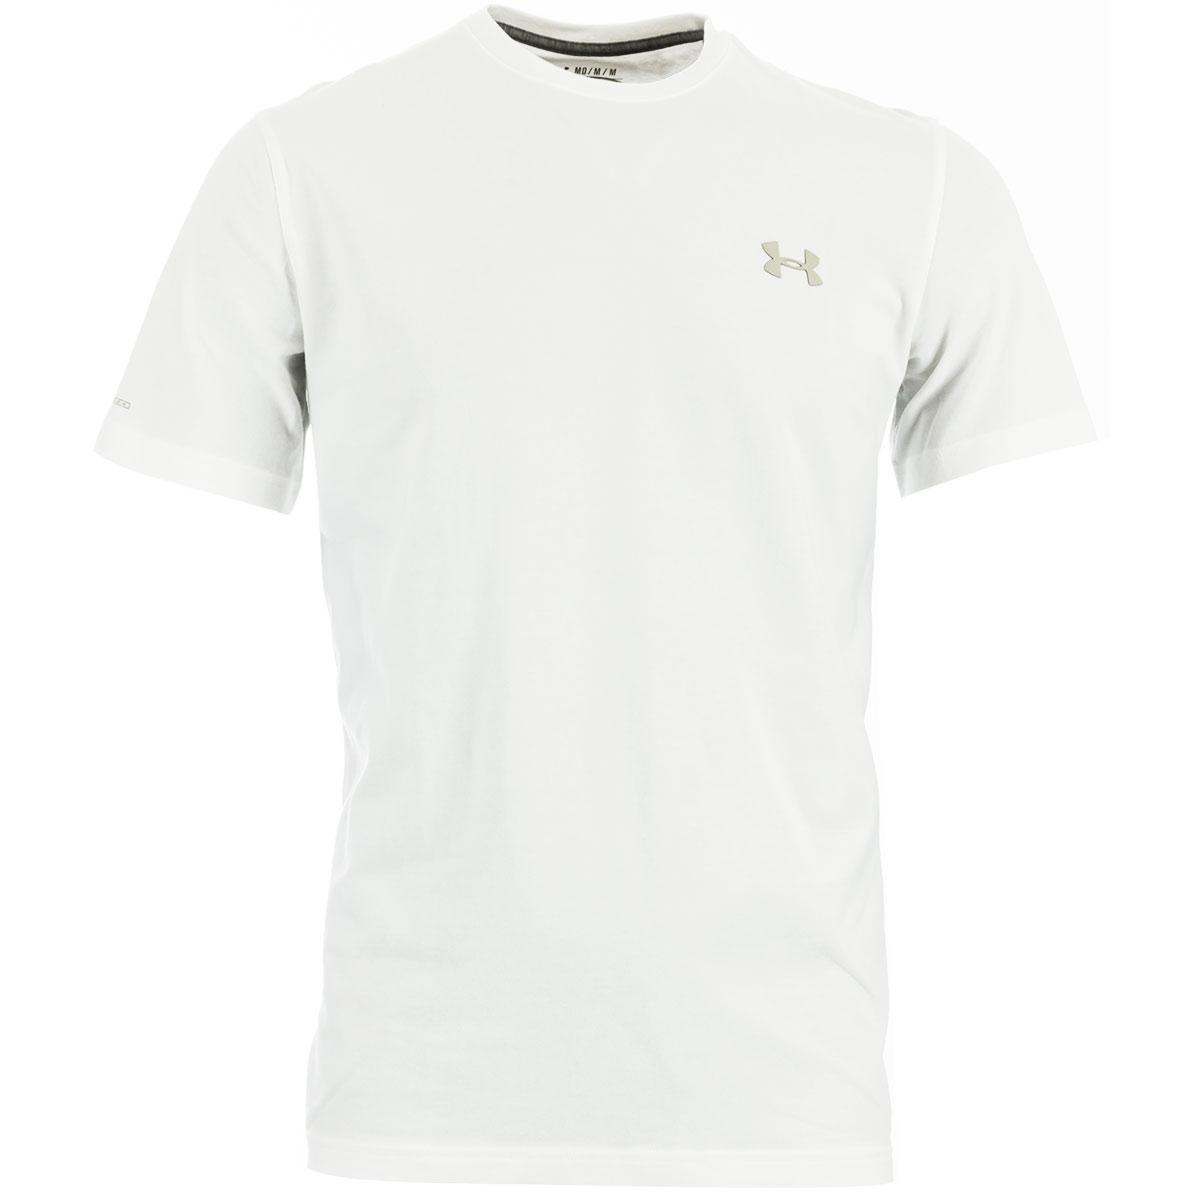 White Under Sink Bathroom Cabinet Undersink Storage: White Under Armour Heatgear Charged Cotton Tee Shirt